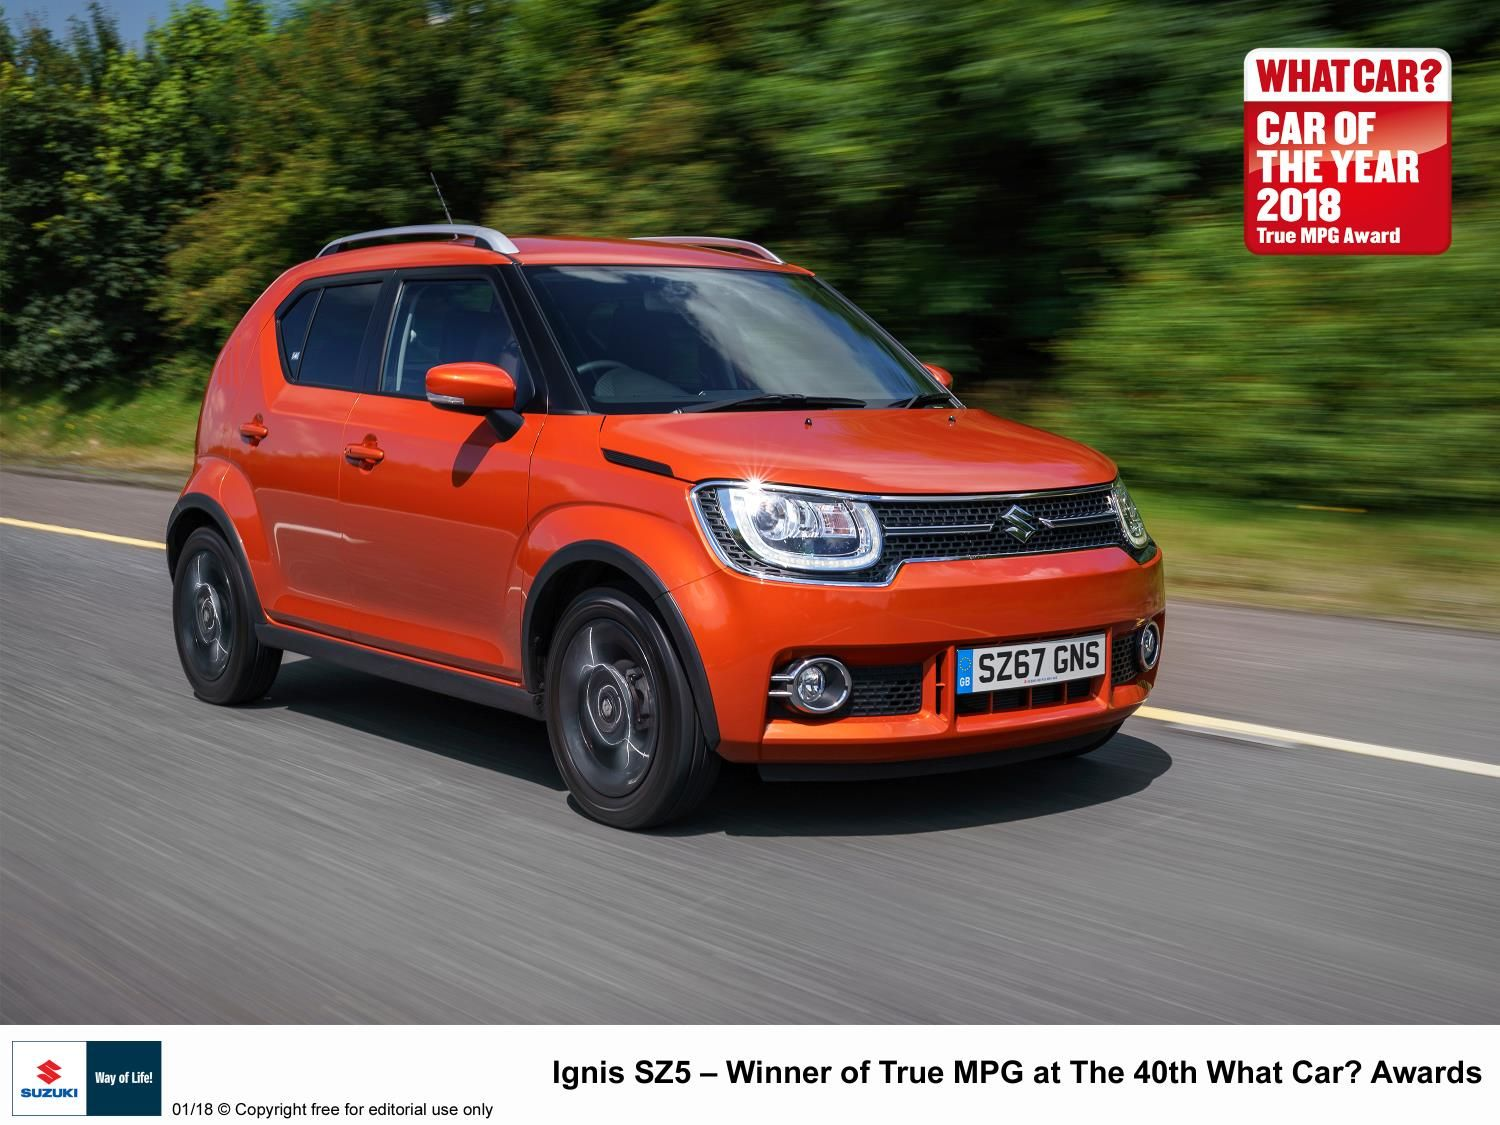 SUCCESS FOR SUZUKI AT THE 40th WHAT CAR? AWARDS